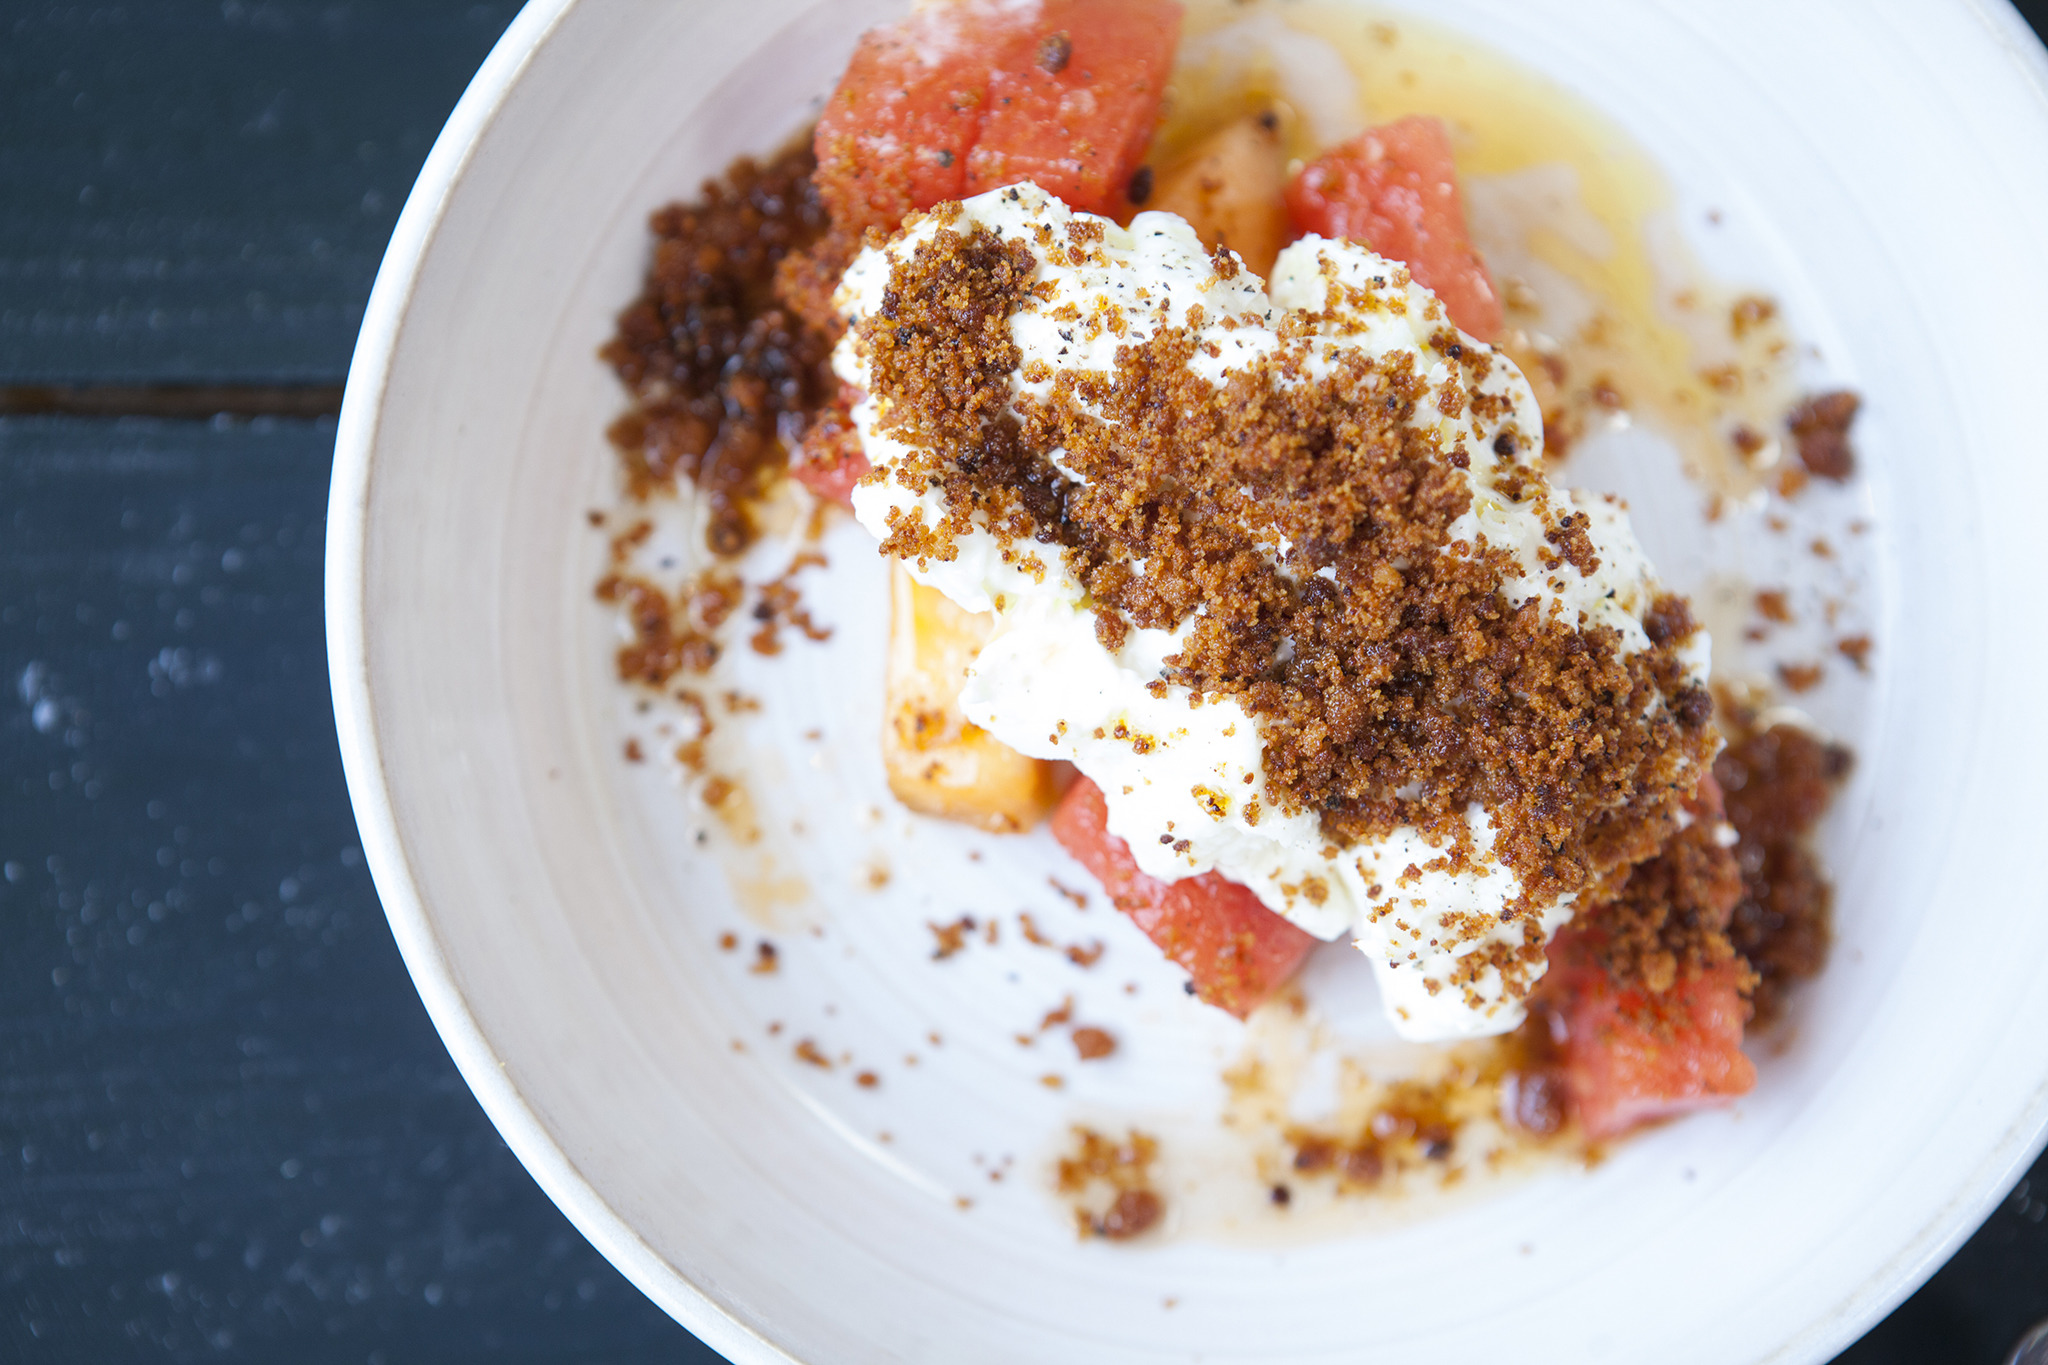 Burrata with Grilled Watermelon and Toasted Milk at Goldie's Burrata is like ooey gooey, buttery mozzarella cheese. Top it on almost anything and it's a no-brainer hit. Thomas Lim rethinks the cheese with grilled watermelon and crunchy toasted milk crumb